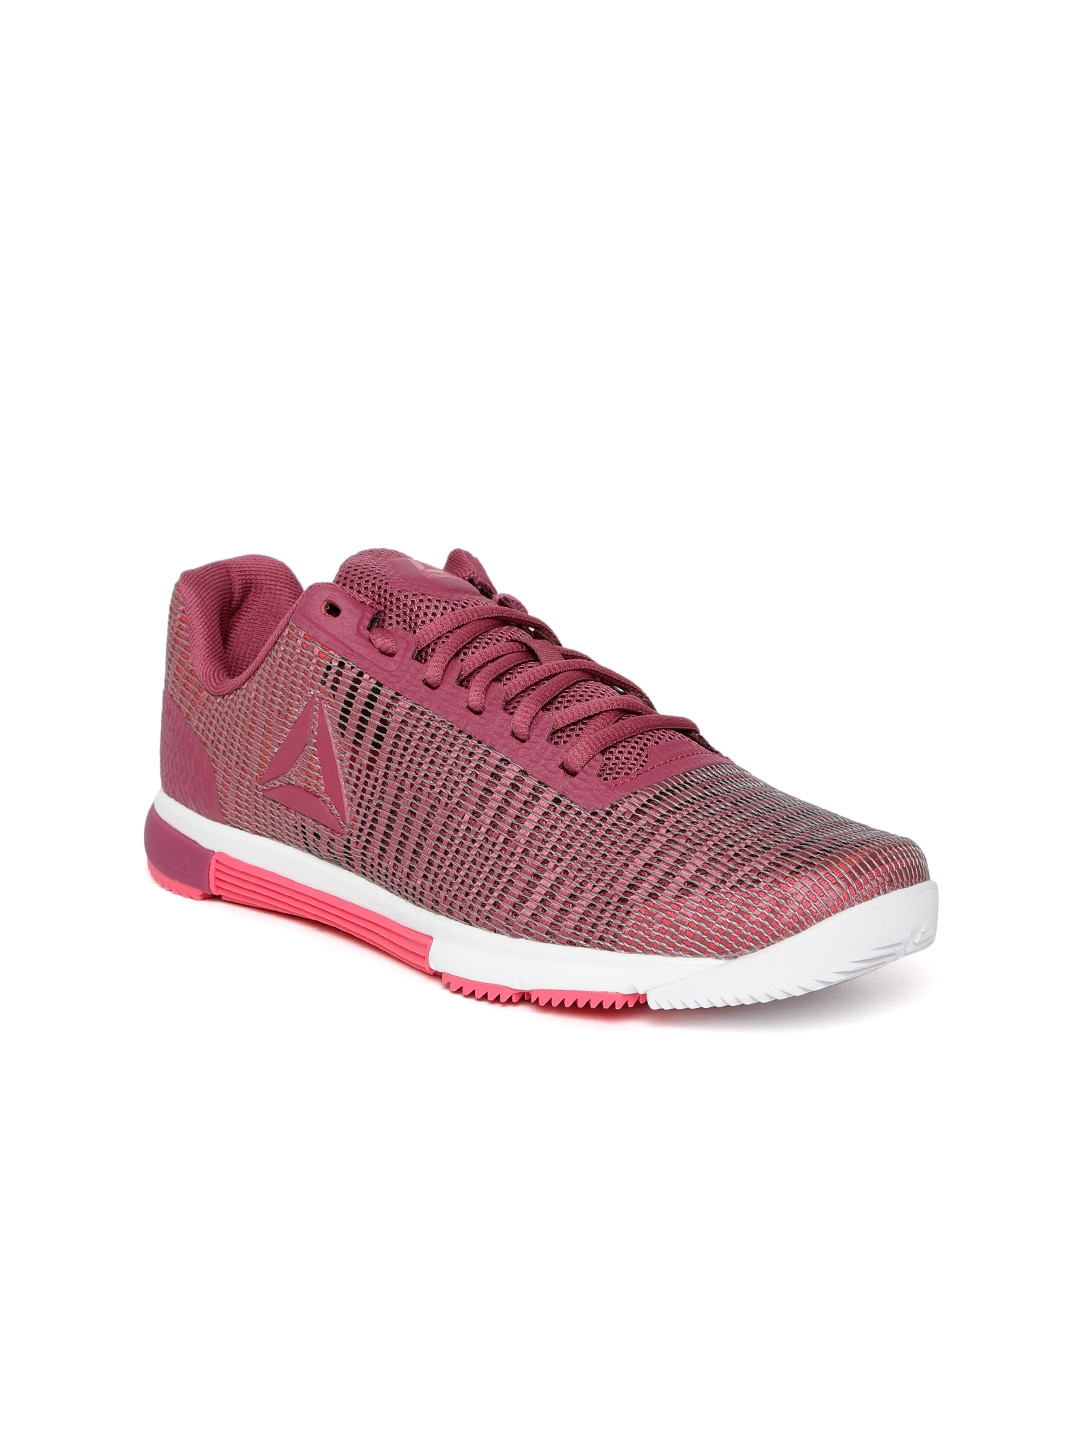 a0d27e7366f7 Women s Reebok Sports Shoes - Buy Reebok Sports Shoes for Women Online in  India